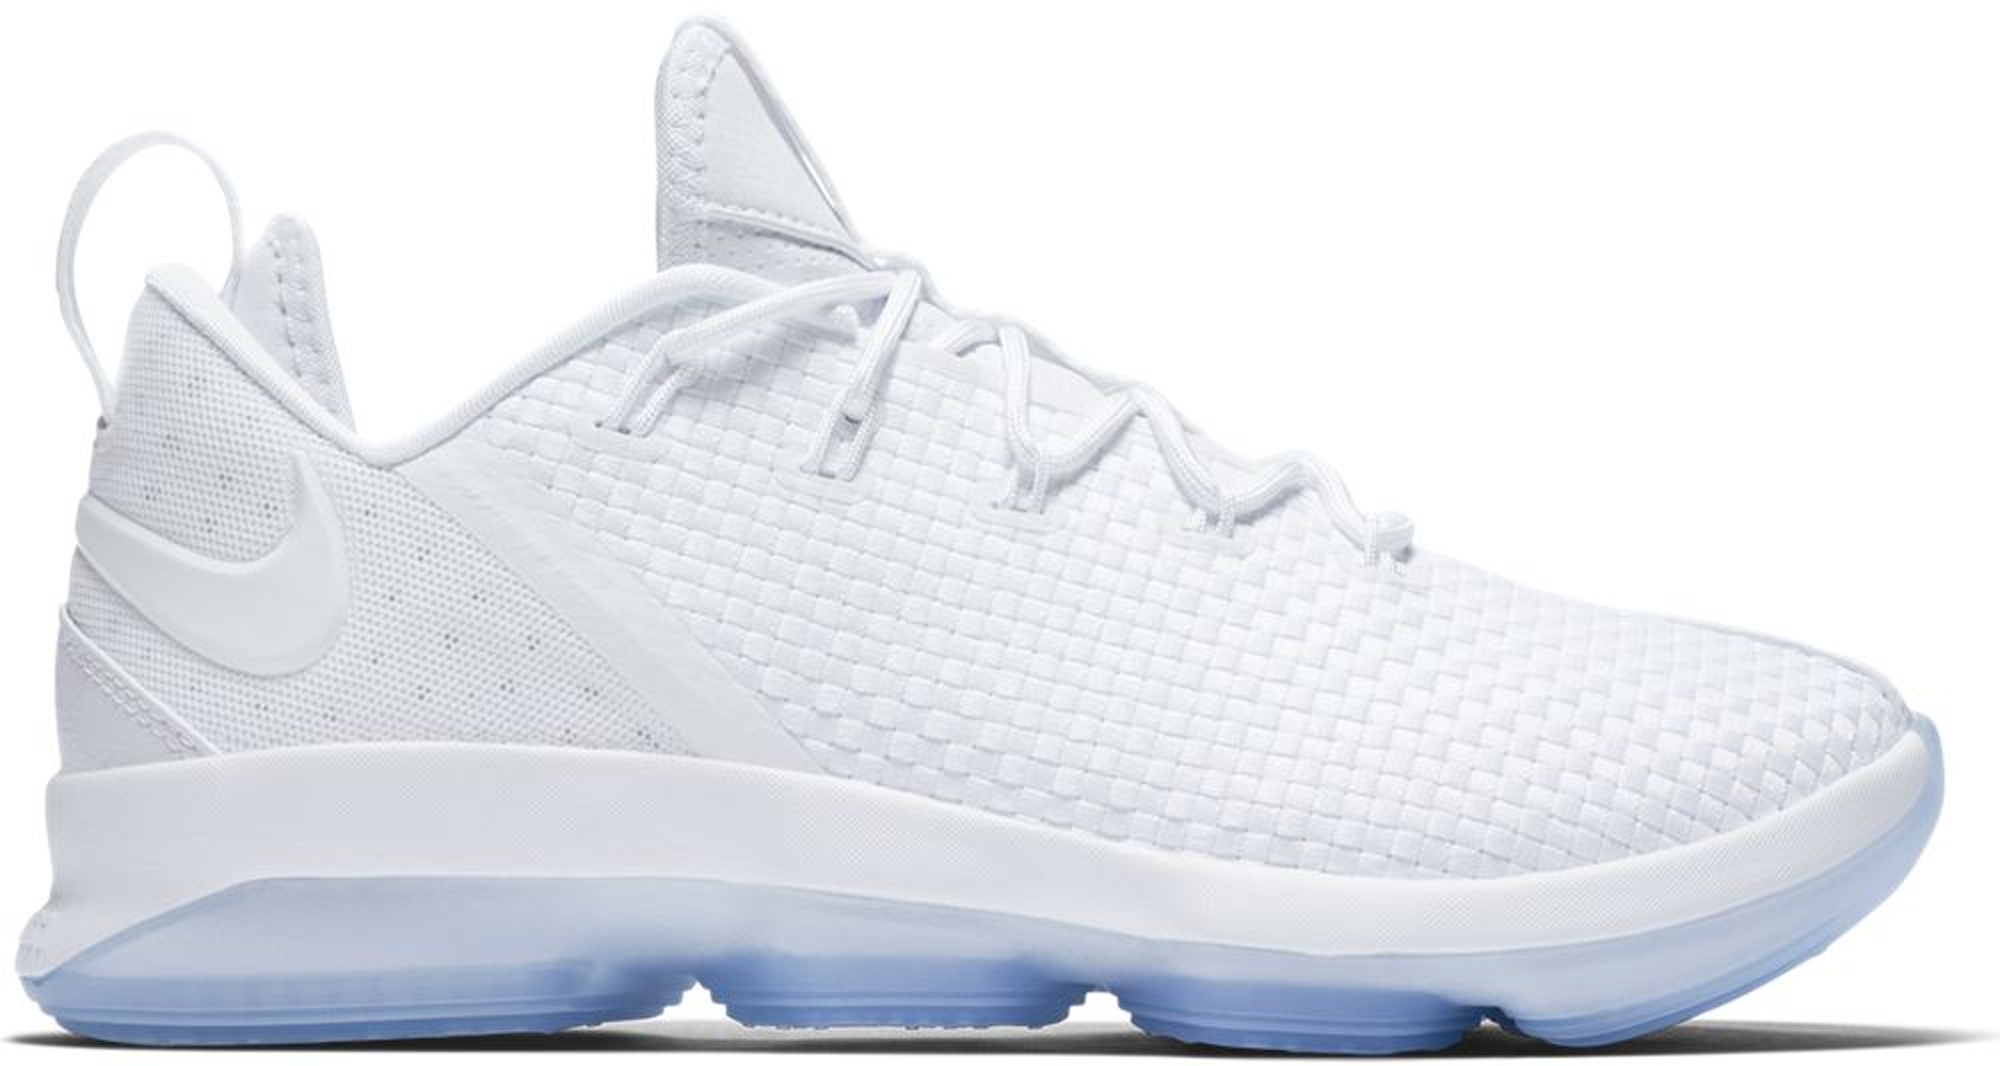 half off 0c544 0c139 official nike. running shoes 8da14 96874  spain hypeanalyzer lebron 14 low  white ice 459b6 b8db2